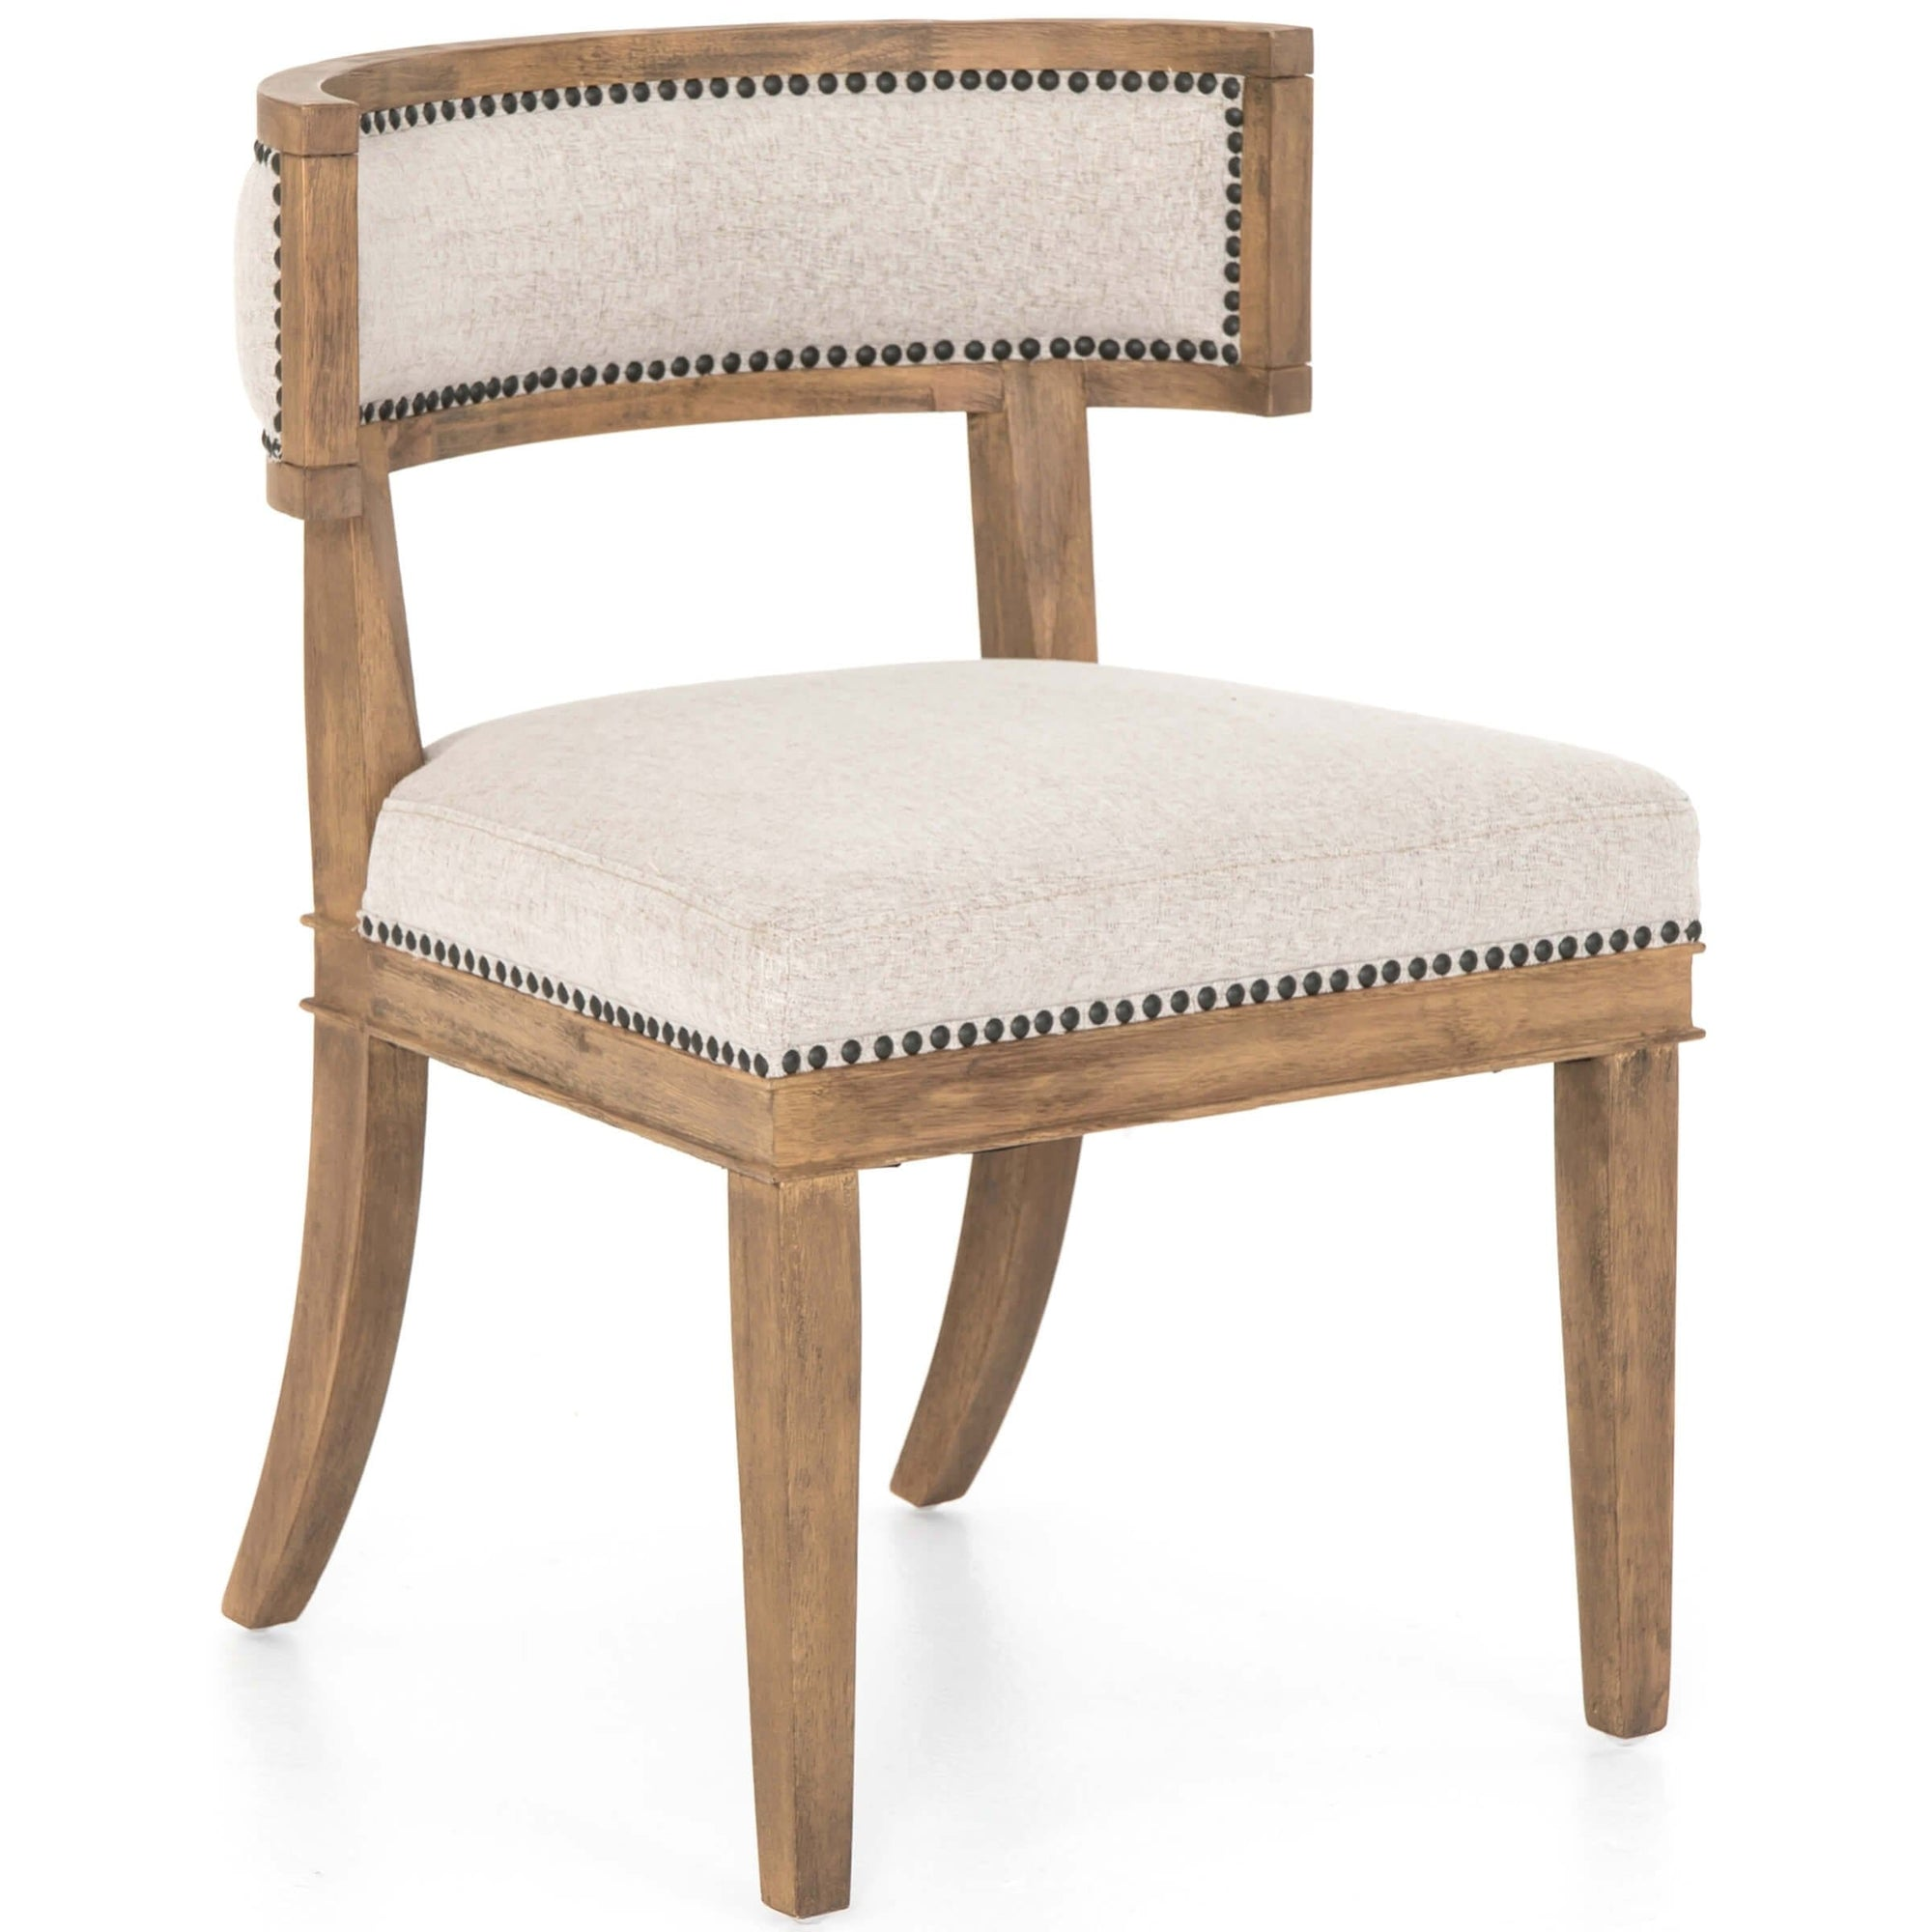 Awe Inspiring Carter Dining Chair Fulci Stone High Fashion Home Short Links Chair Design For Home Short Linksinfo